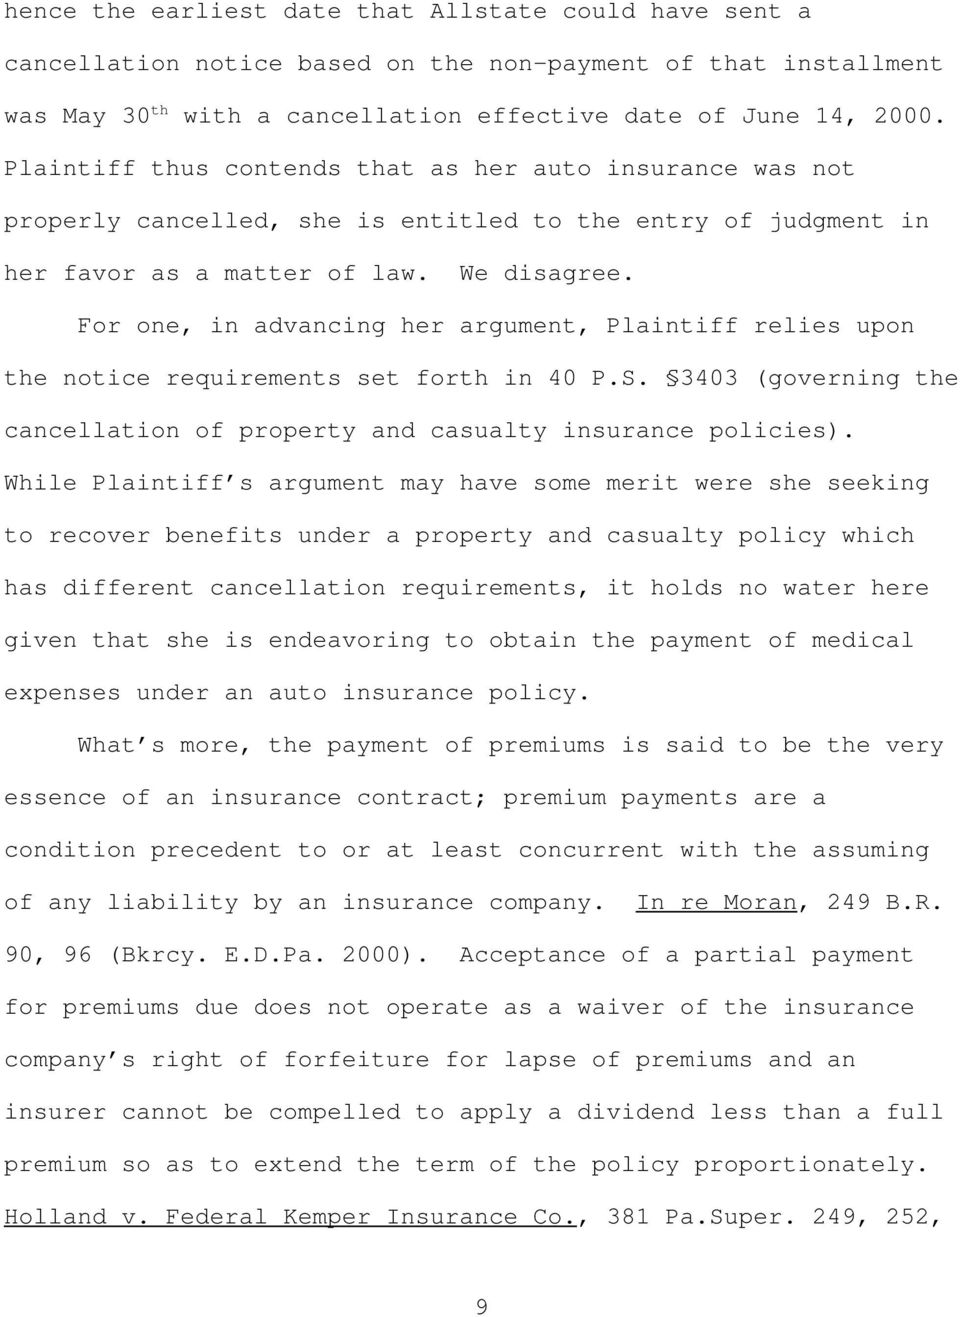 For one, in advancing her argument, Plaintiff relies upon the notice requirements set forth in 40 P.S. 3403 (governing the cancellation of property and casualty insurance policies).